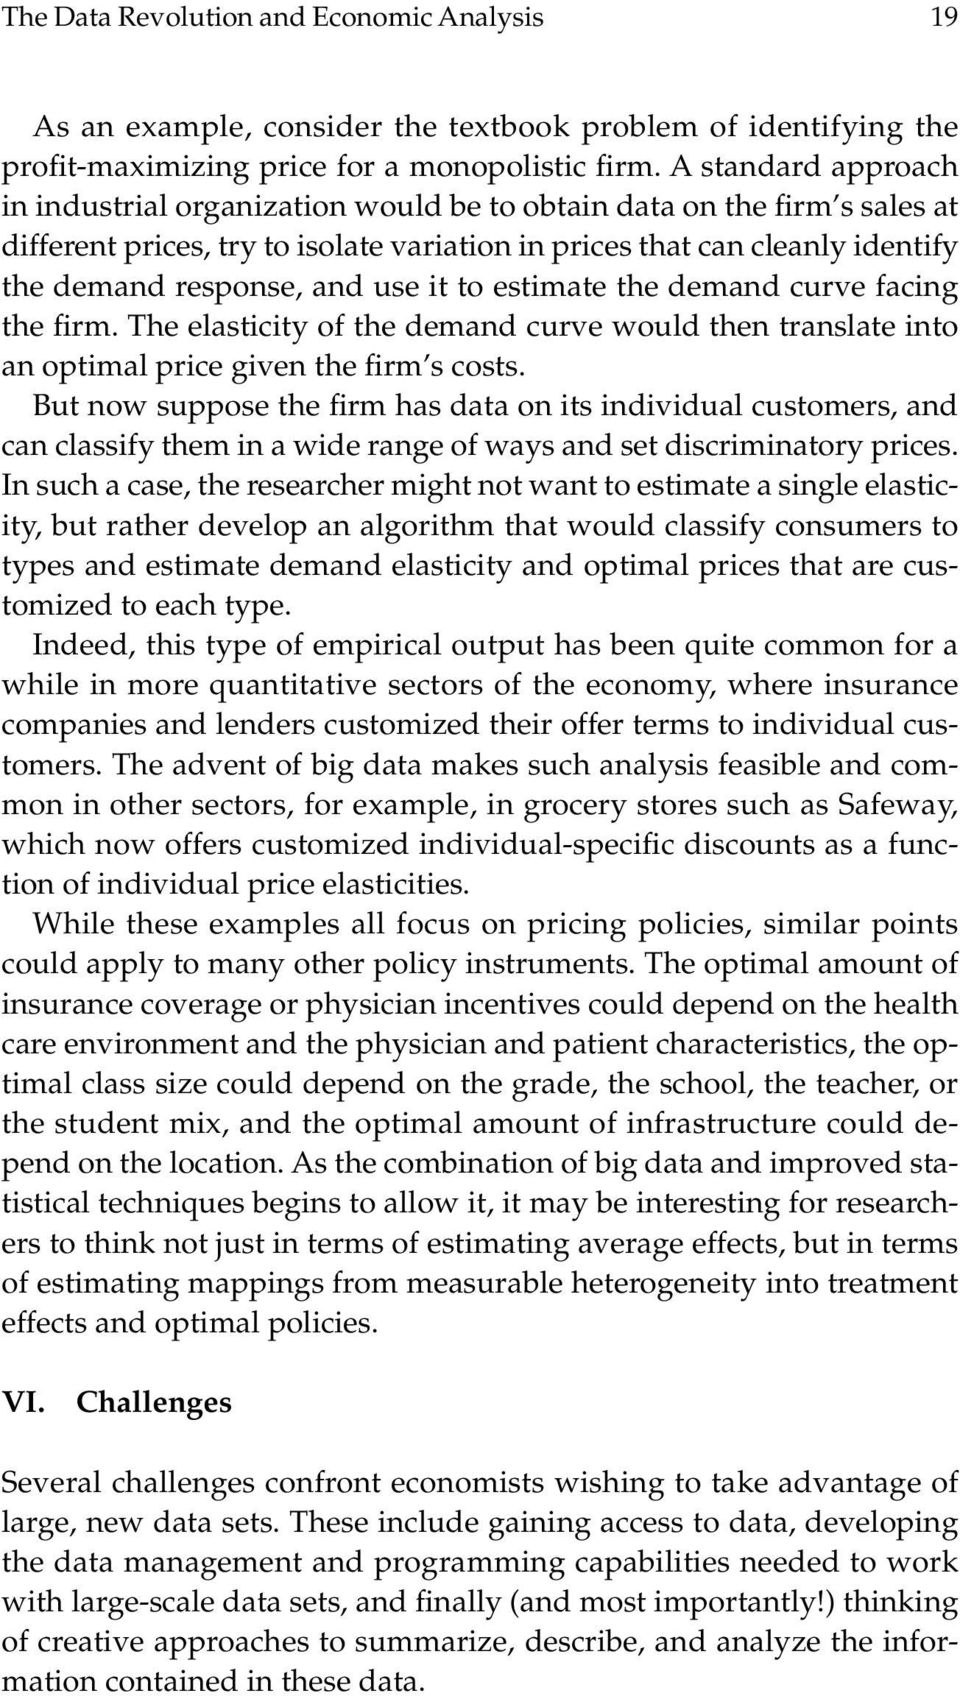 use it to estimate the demand curve facing the firm. The elasticity of the demand curve would then translate into an optimal price given the firm s costs.